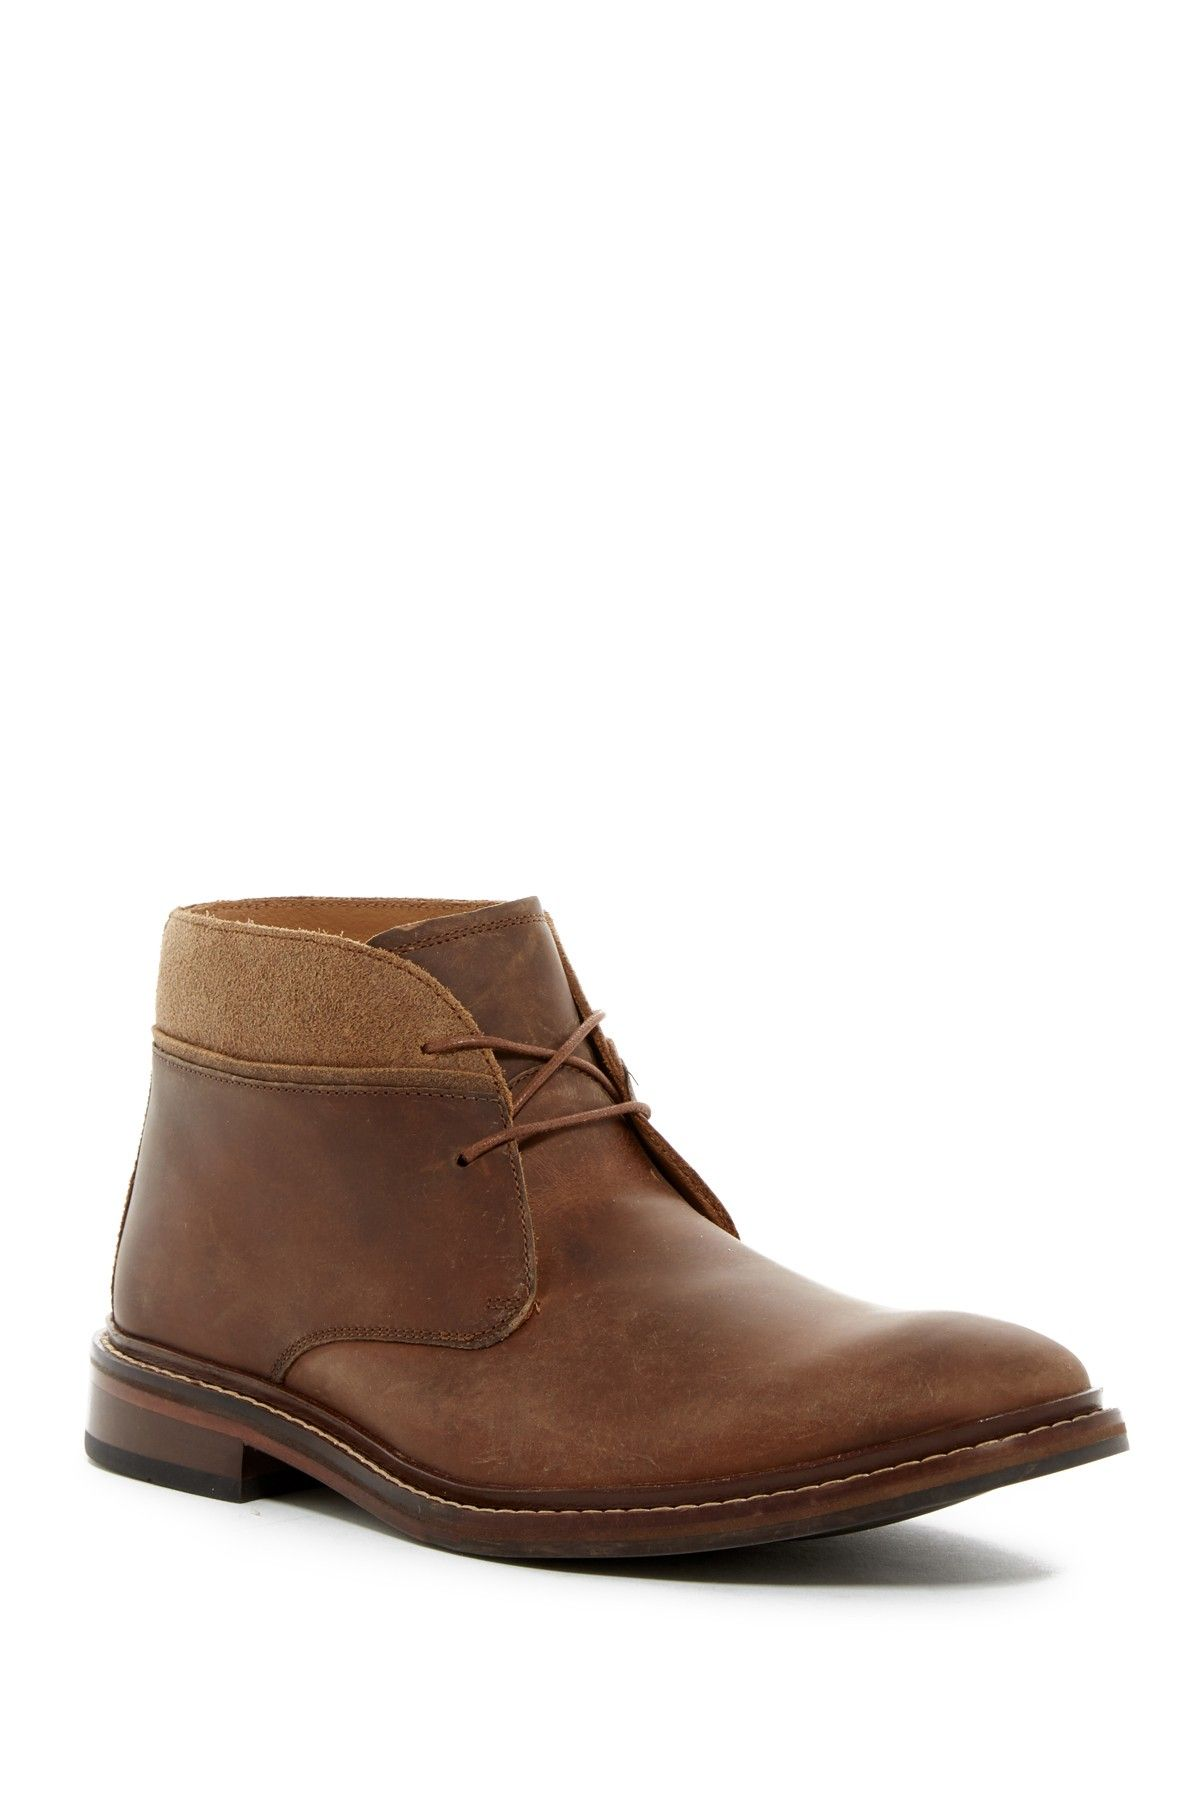 Benton Welt Chukka Boot - Wide Width Available by Cole Haan on  @nordstrom_rack